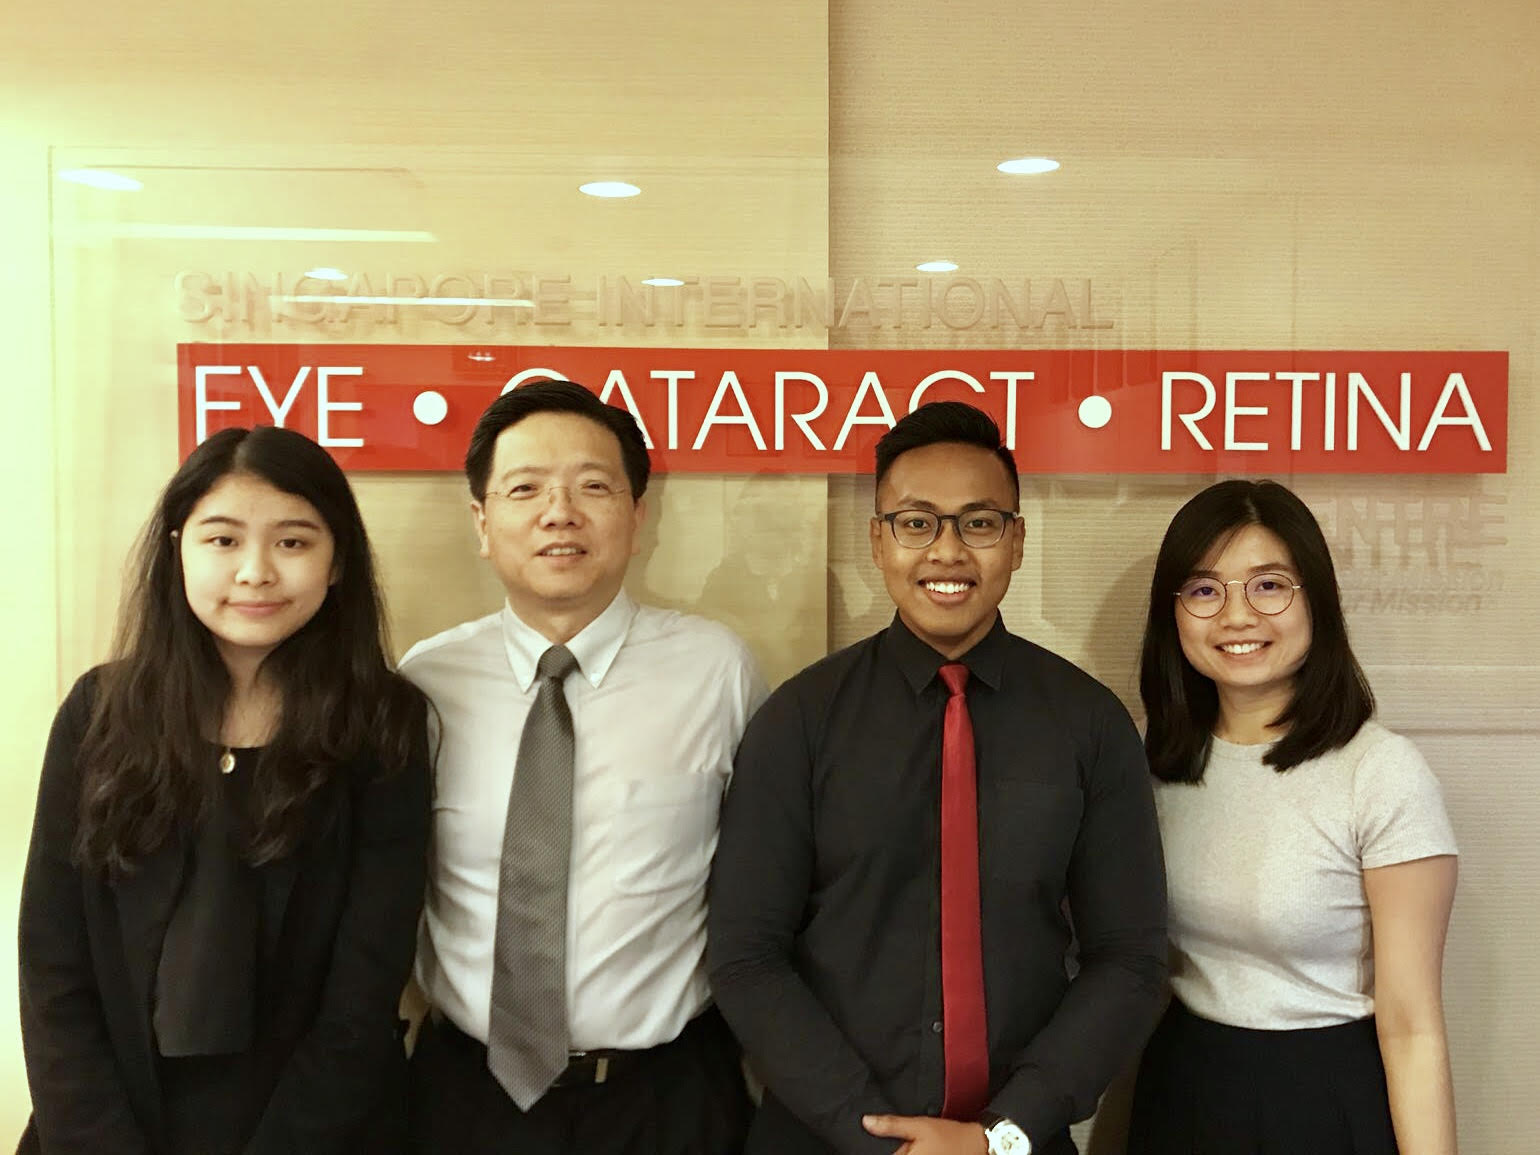 Team and I (third from left) at Singapore International Eye Cataract Retina Centre in Mount Elizabeth Medical Centre